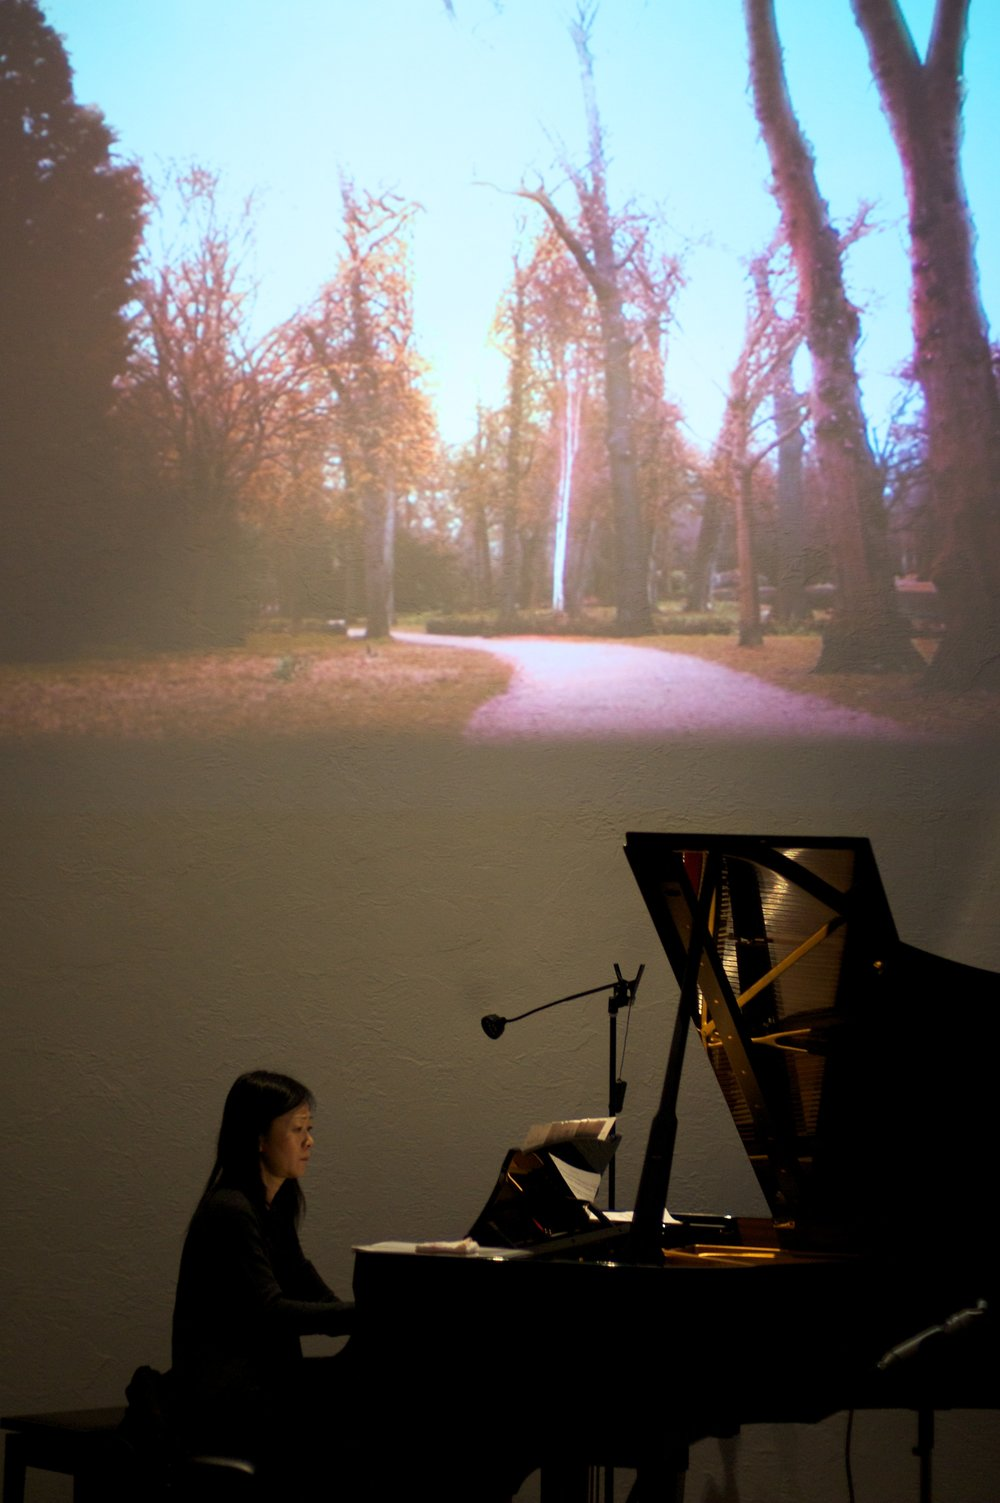 Aquarelles (2012) Music by Yuriko Kojima, for piano. Live-video by Elaine Thomazi Freitas. World premiere.